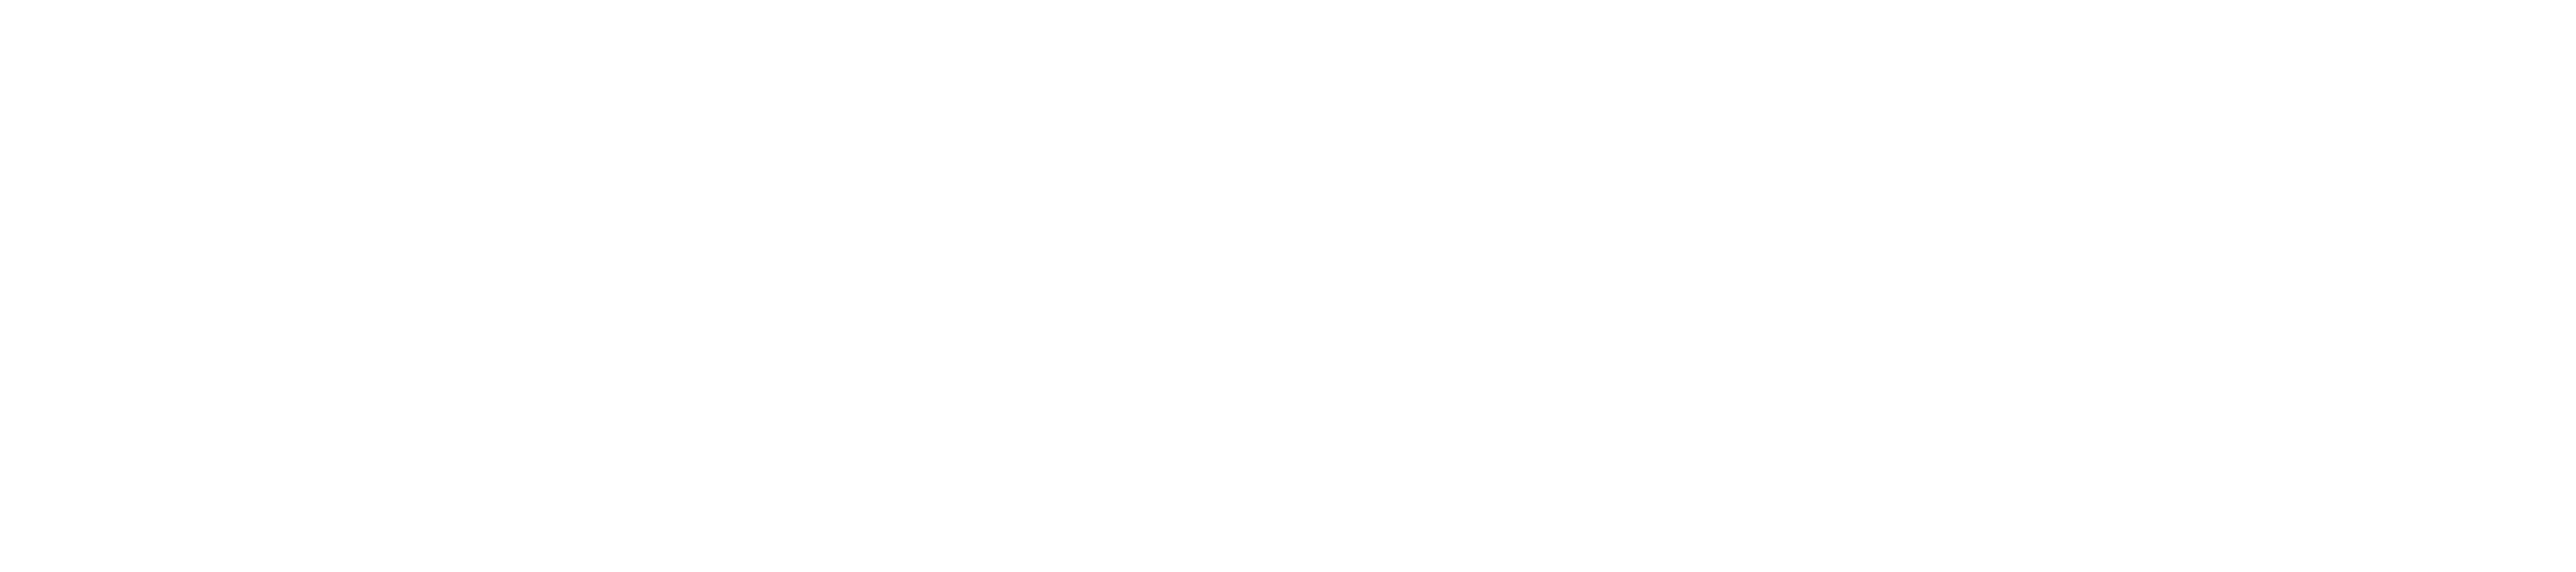 Altamont Software